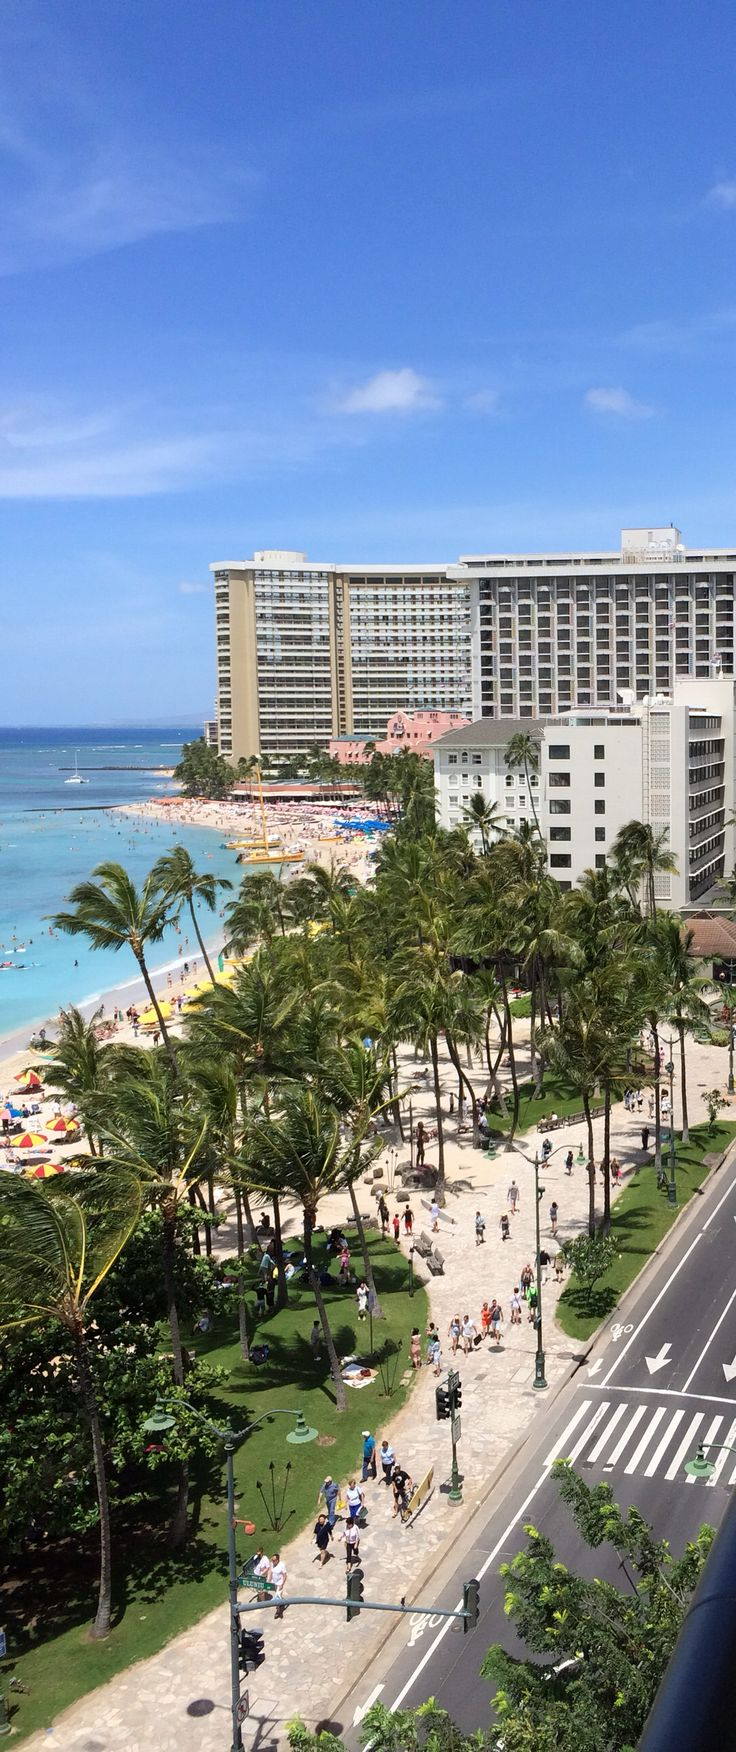 Waikiki beach. Would love to be back on that beach!